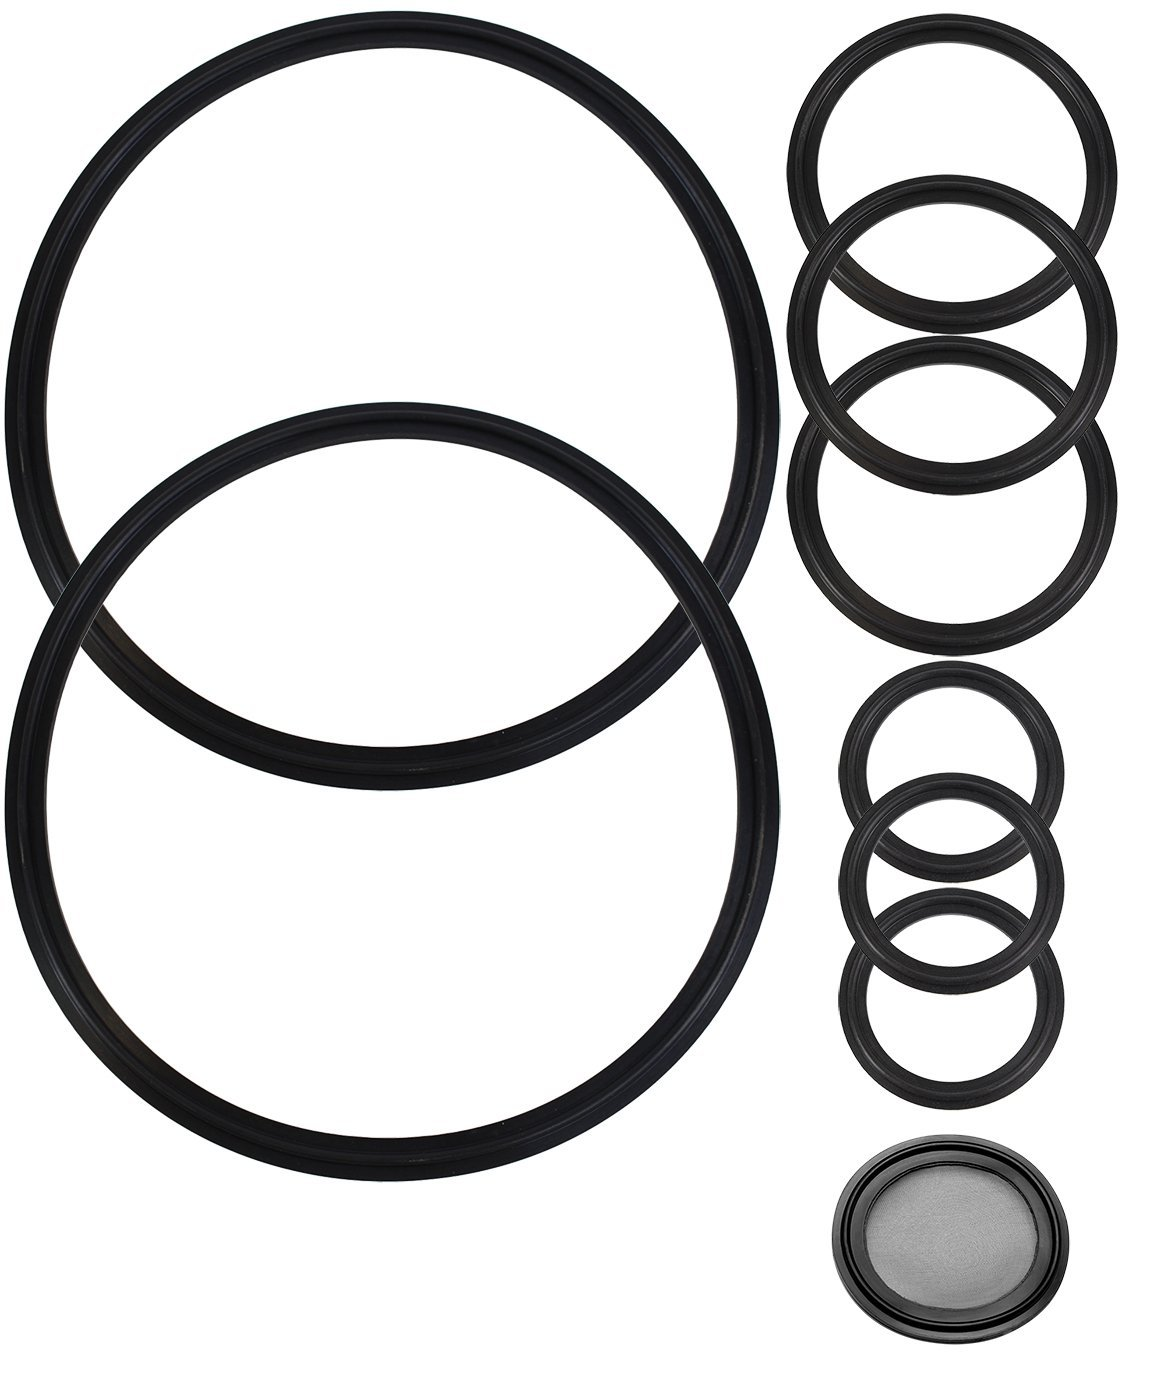 5LB Apollo Top Fill CLS Gasket Set Shop All Categories BVV V2